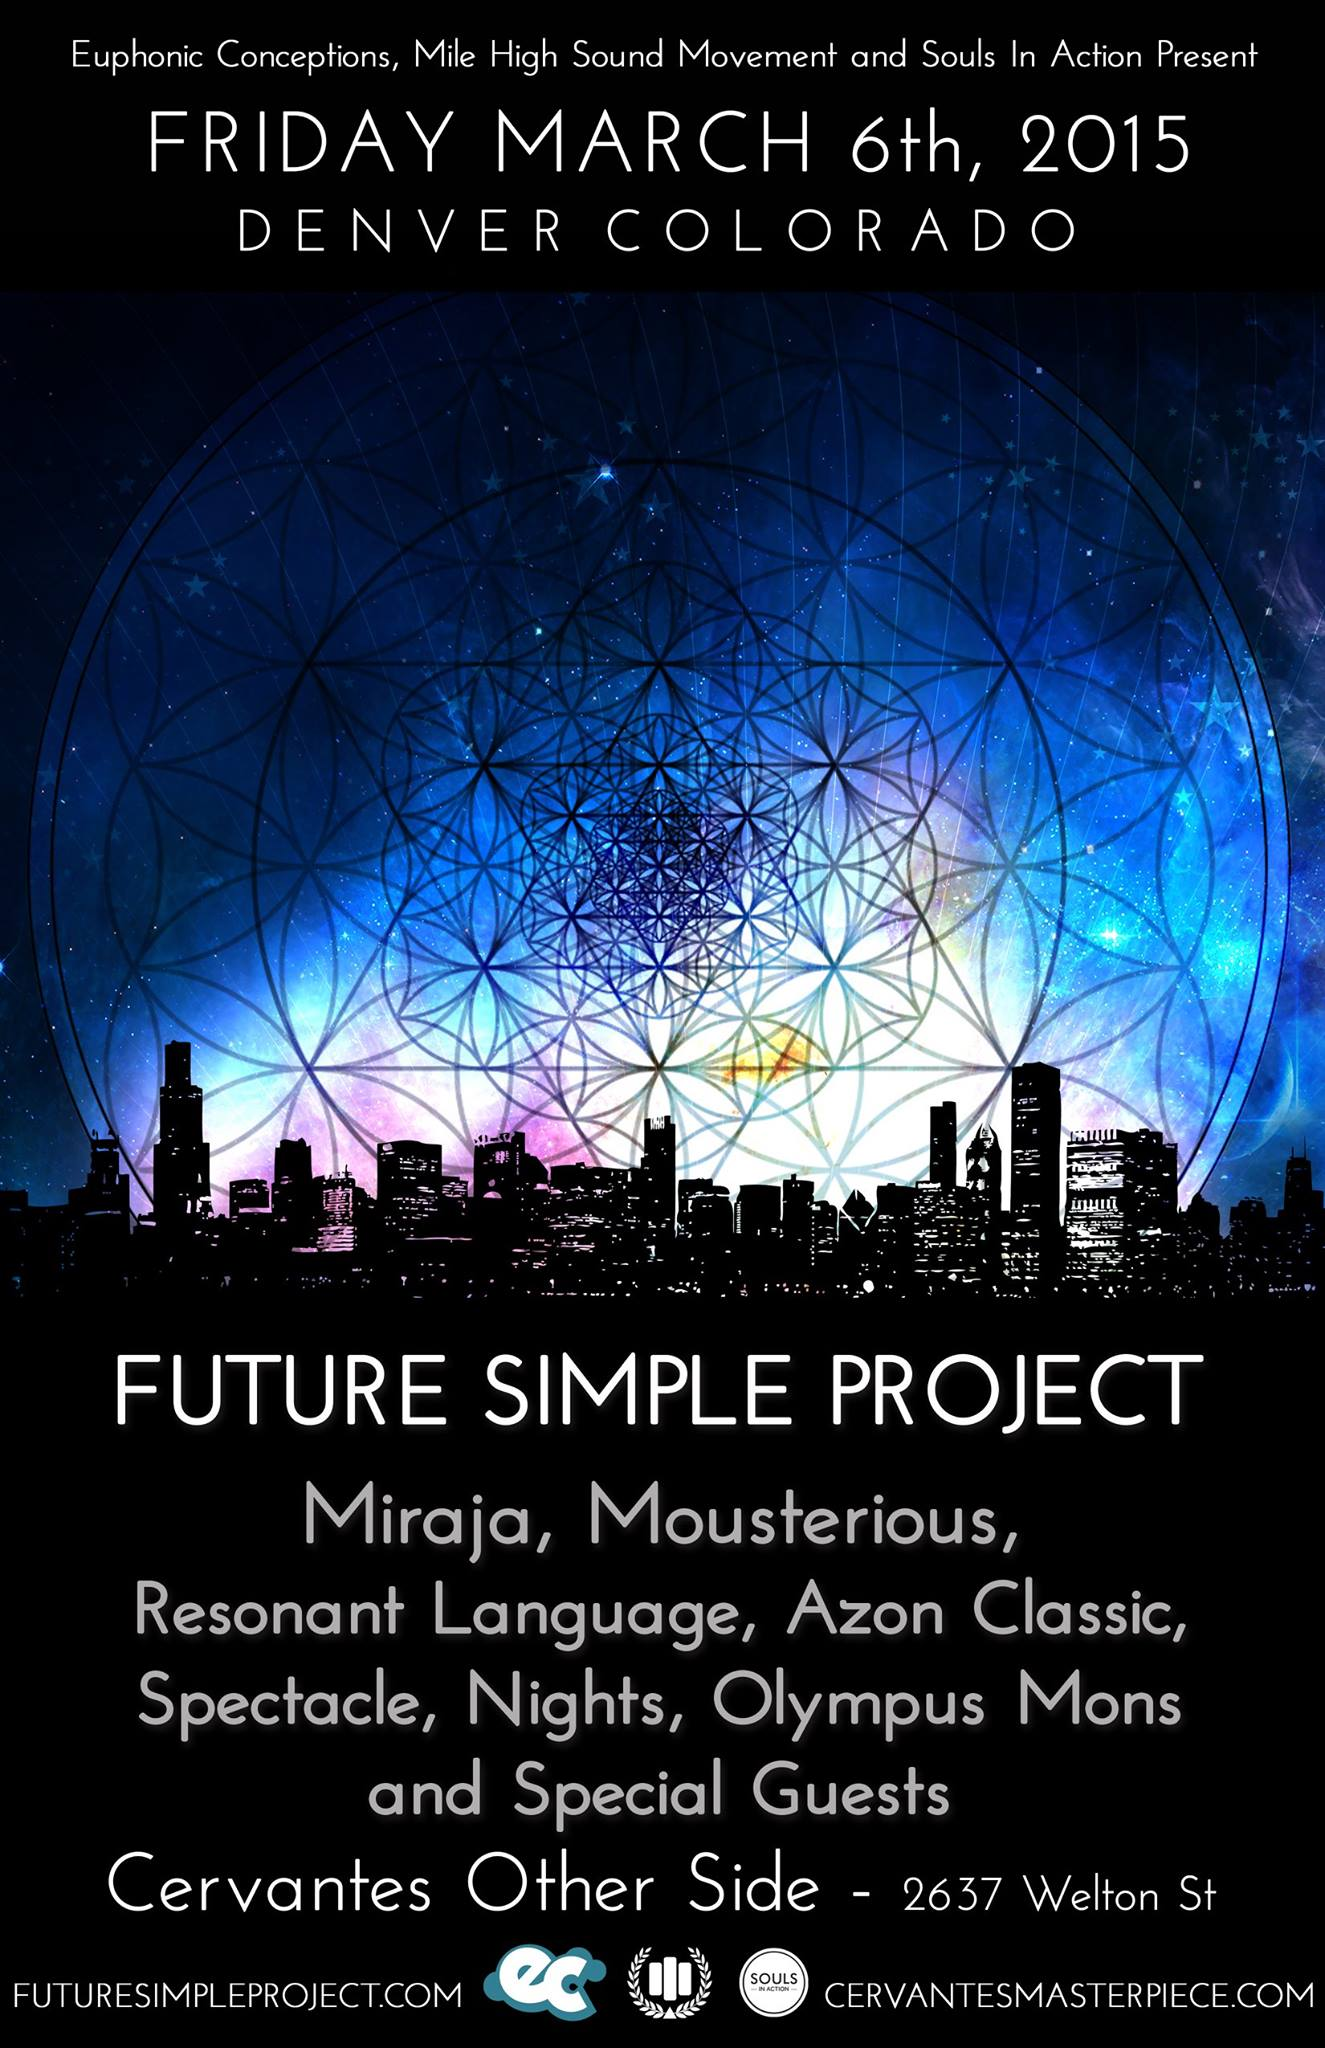 Future Simple Project @ Cervantes Otherside (Denver)